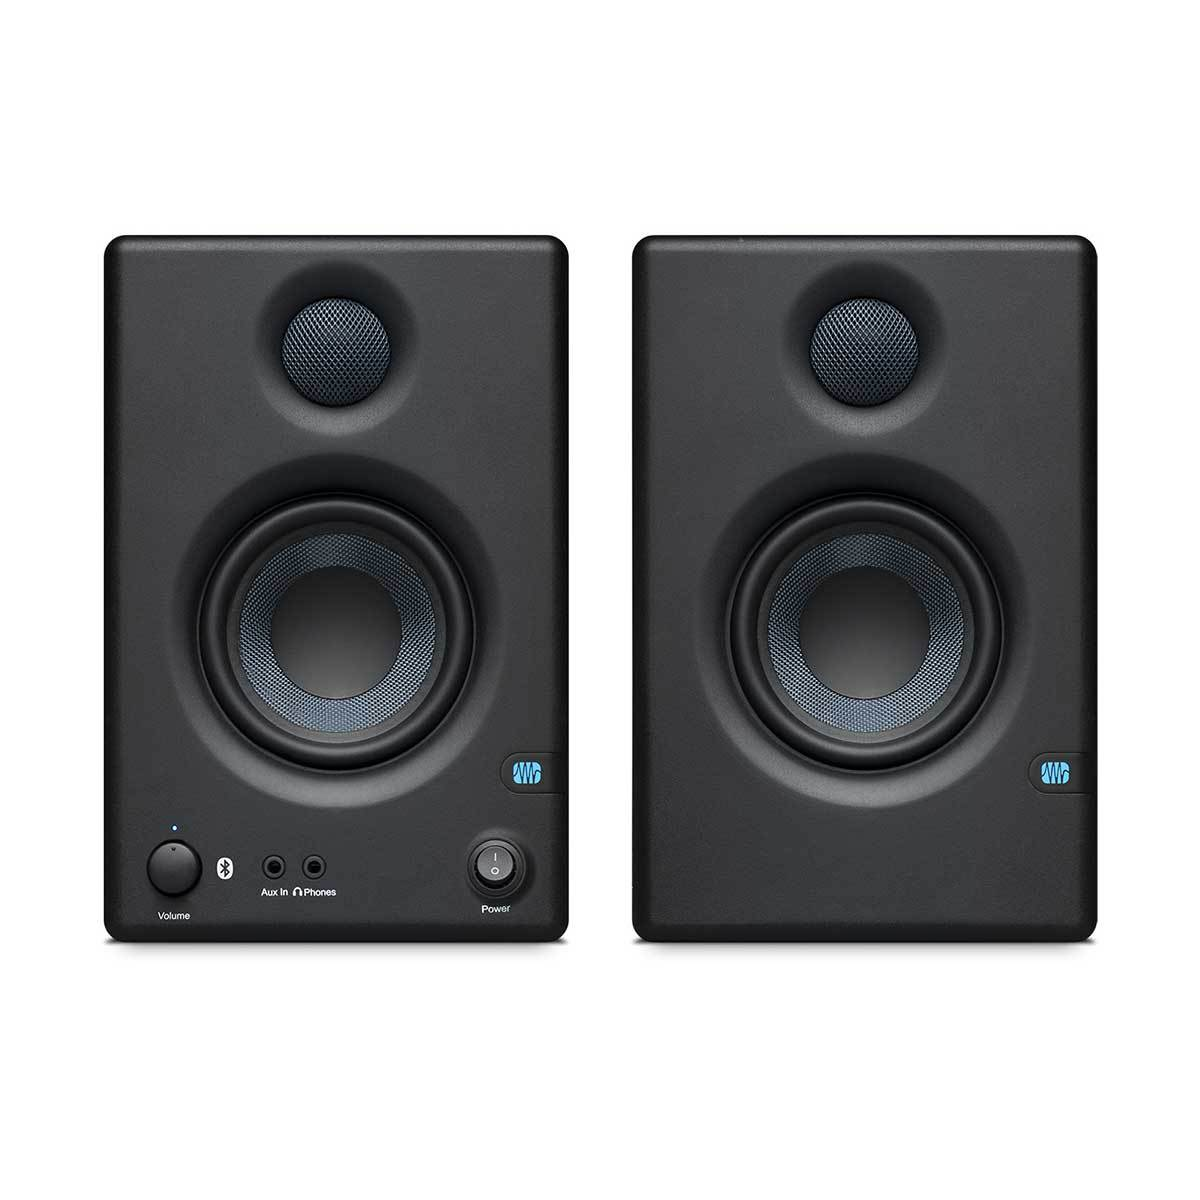 PreSonus Eris E3.5 BT Studio Monitors with Bluetooth